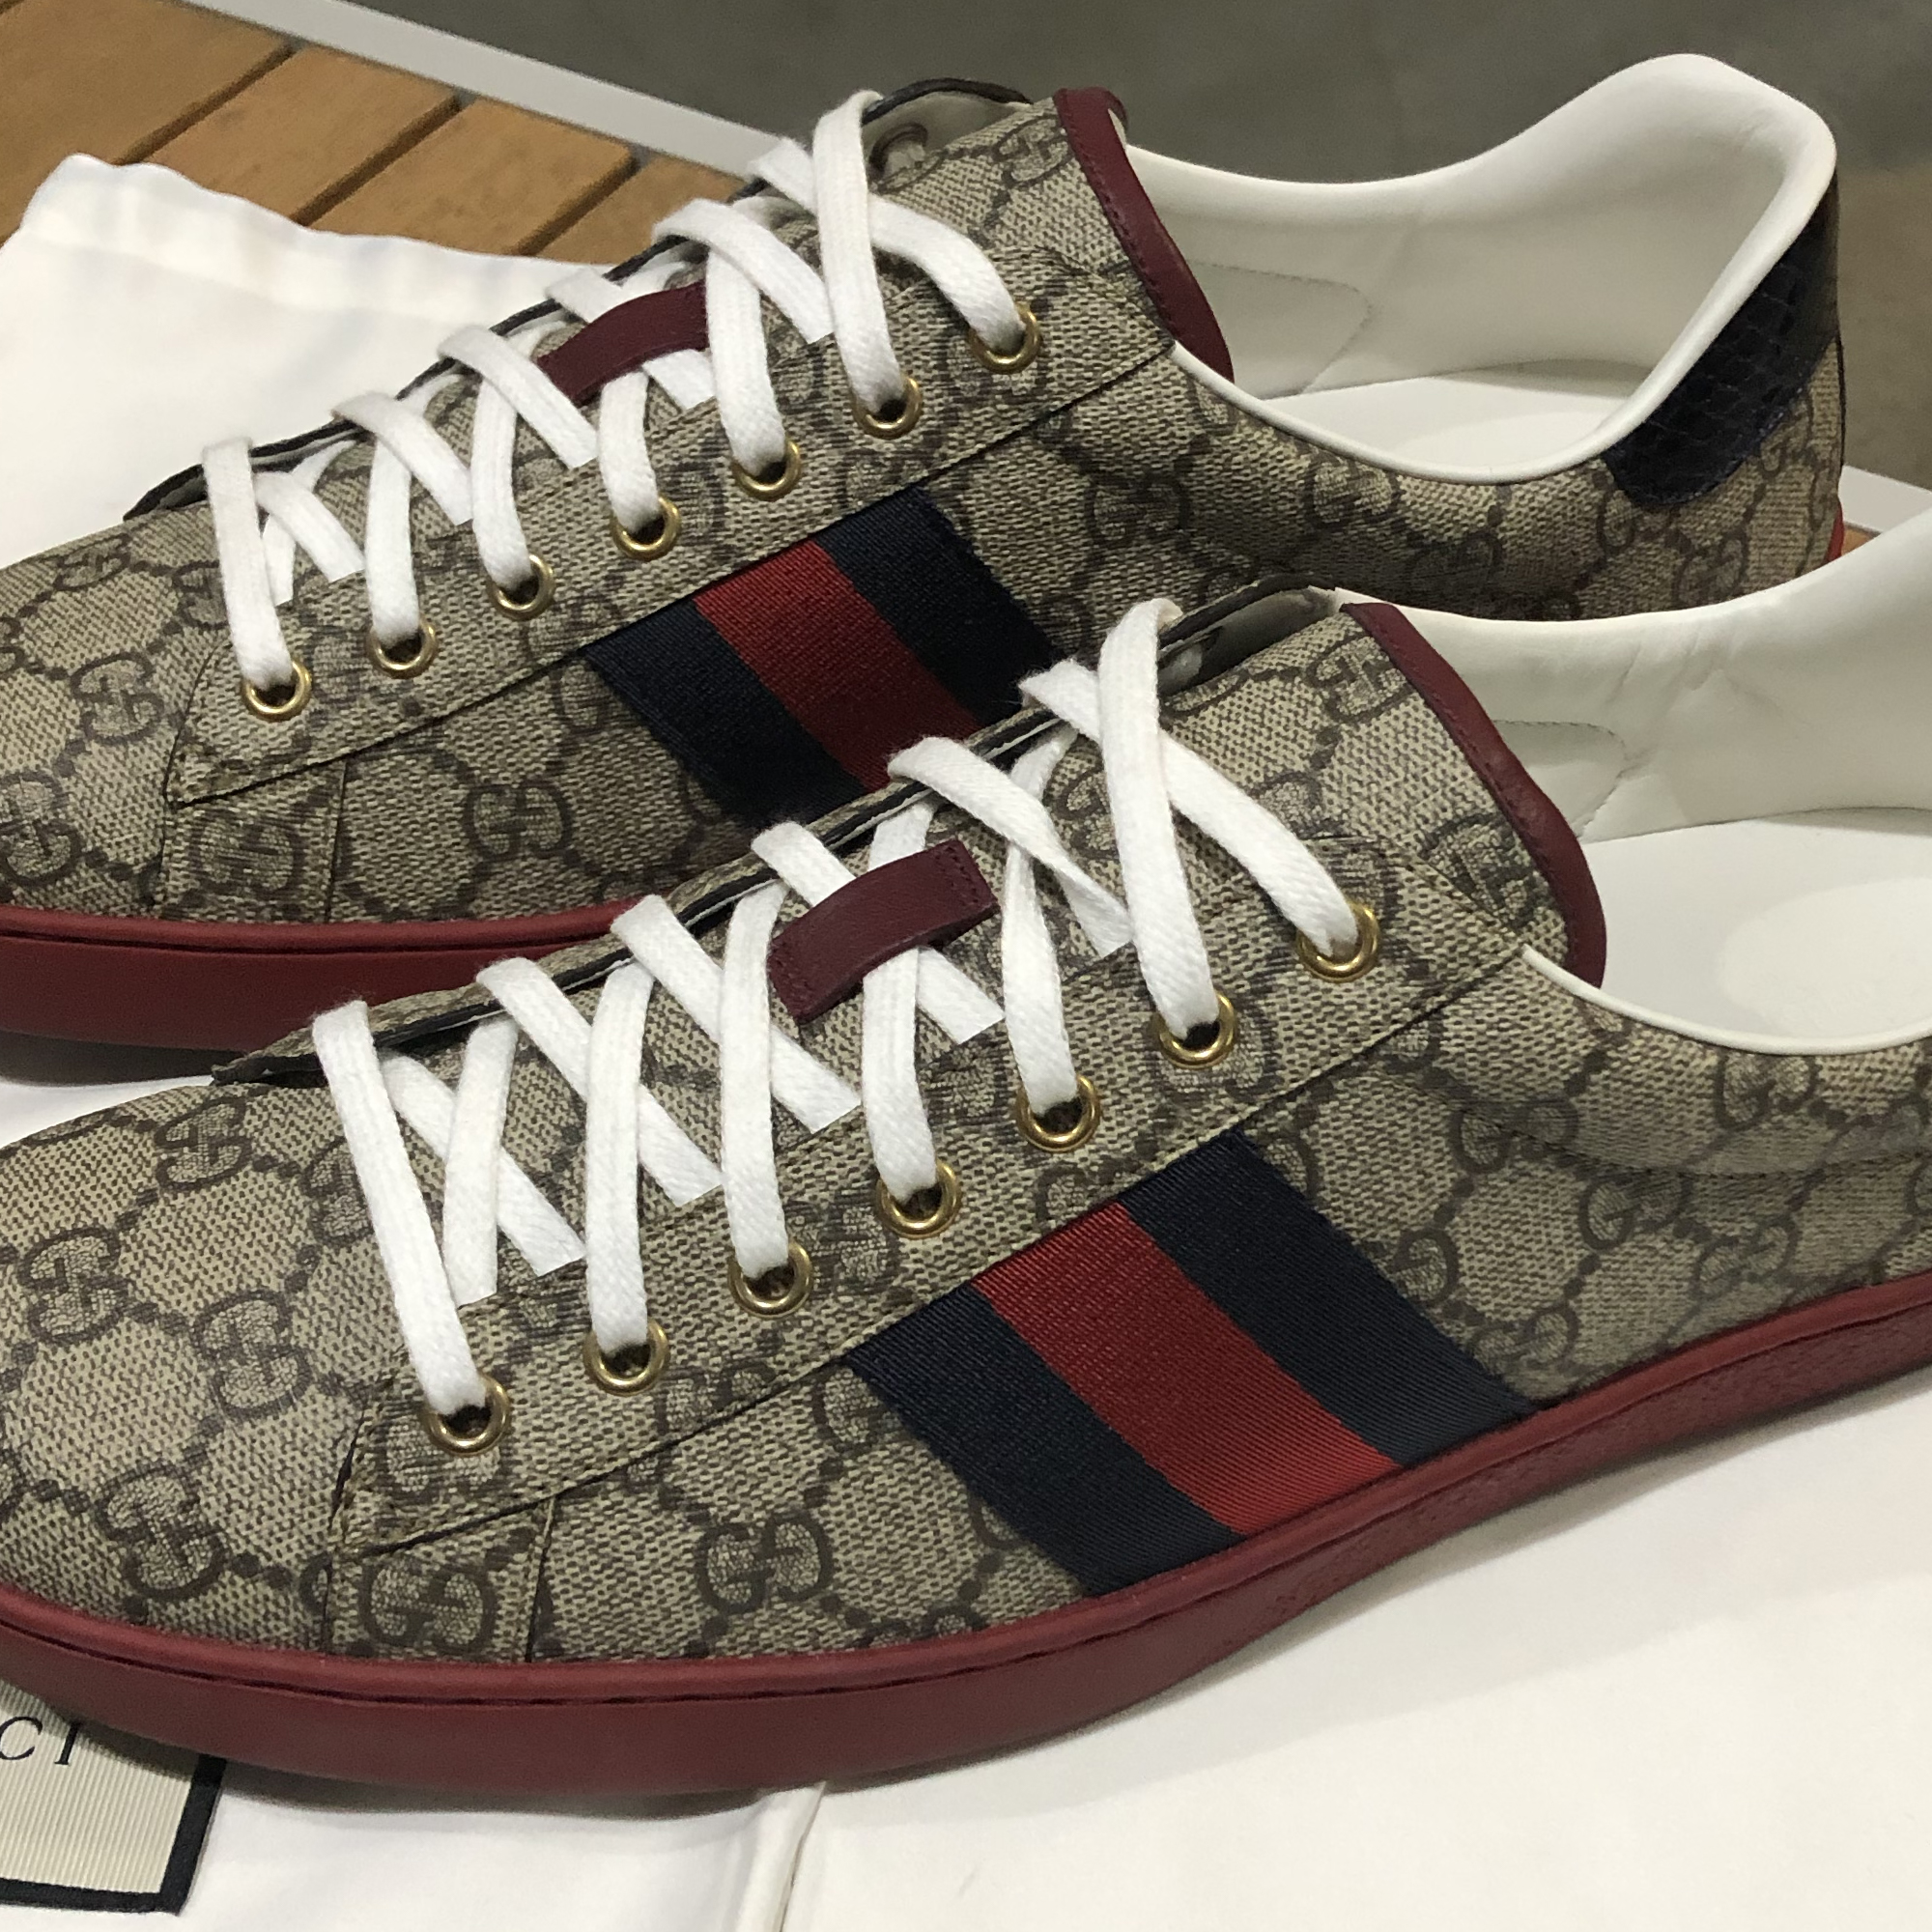 38a3f31bede Gucci Gucci New Ace Webbed Low Top Sneakers - Like New!